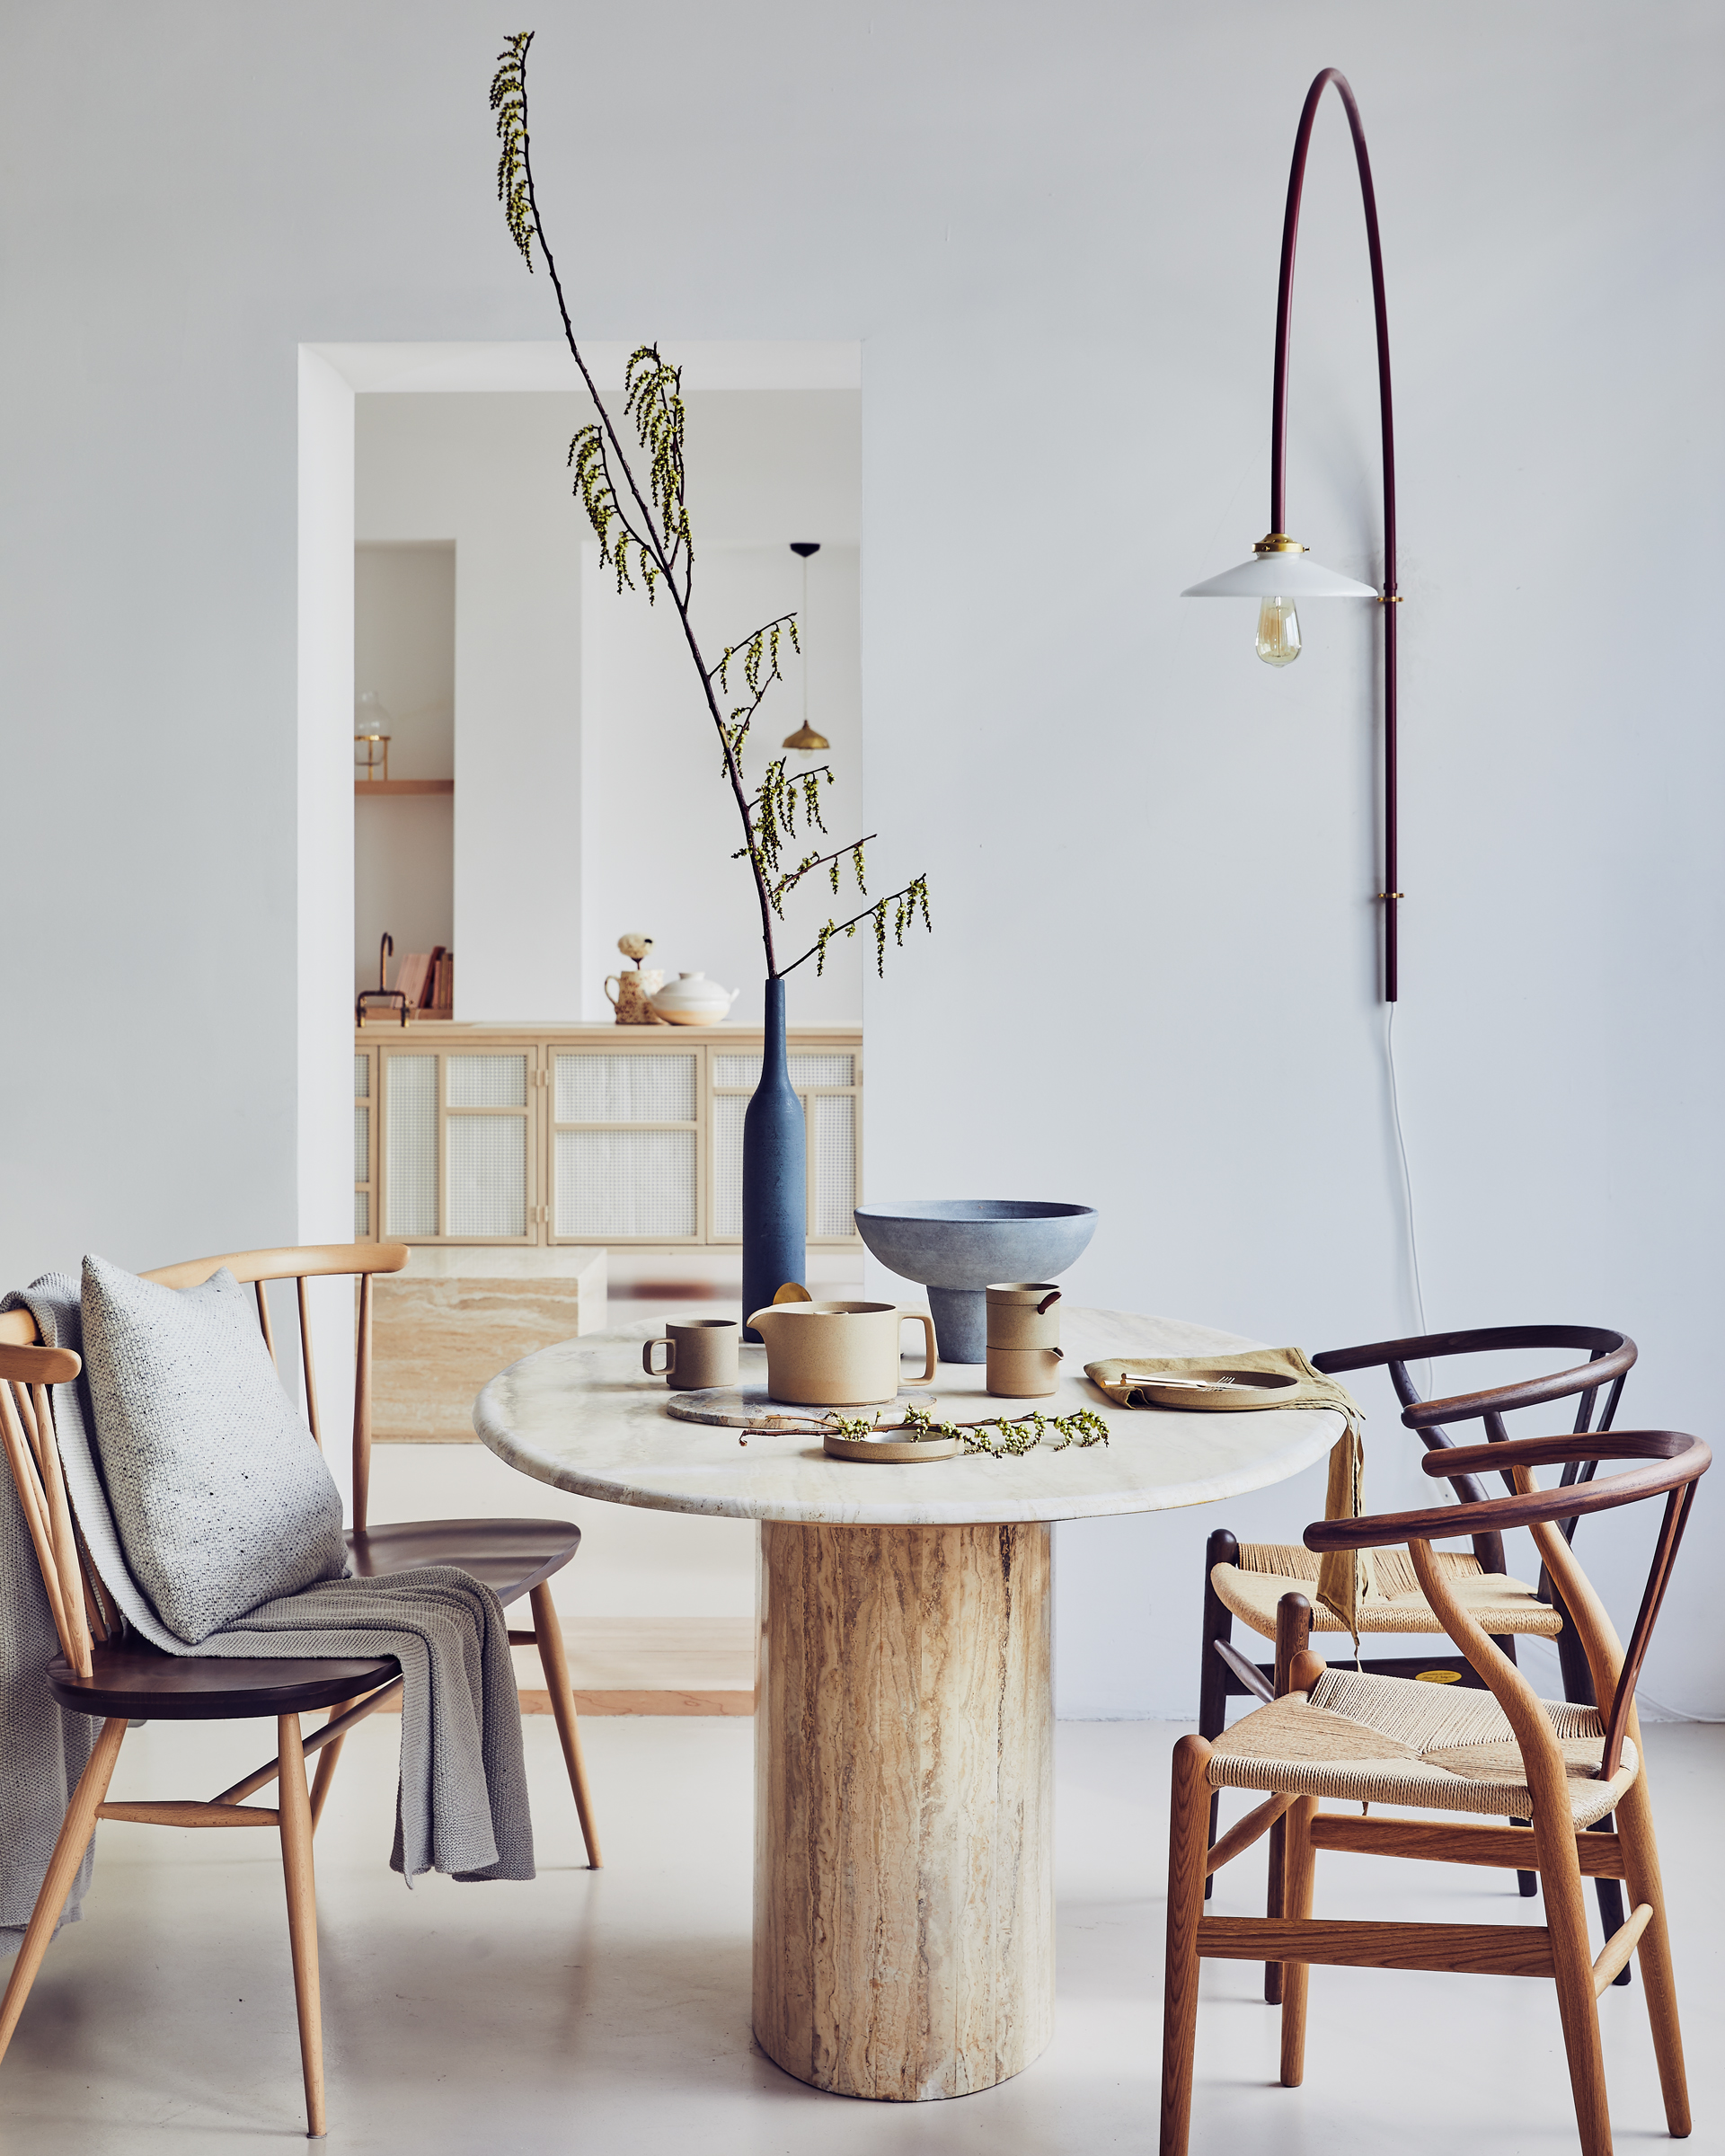 New eco living series for Vtwonen Styling By Cleo Scheulderman